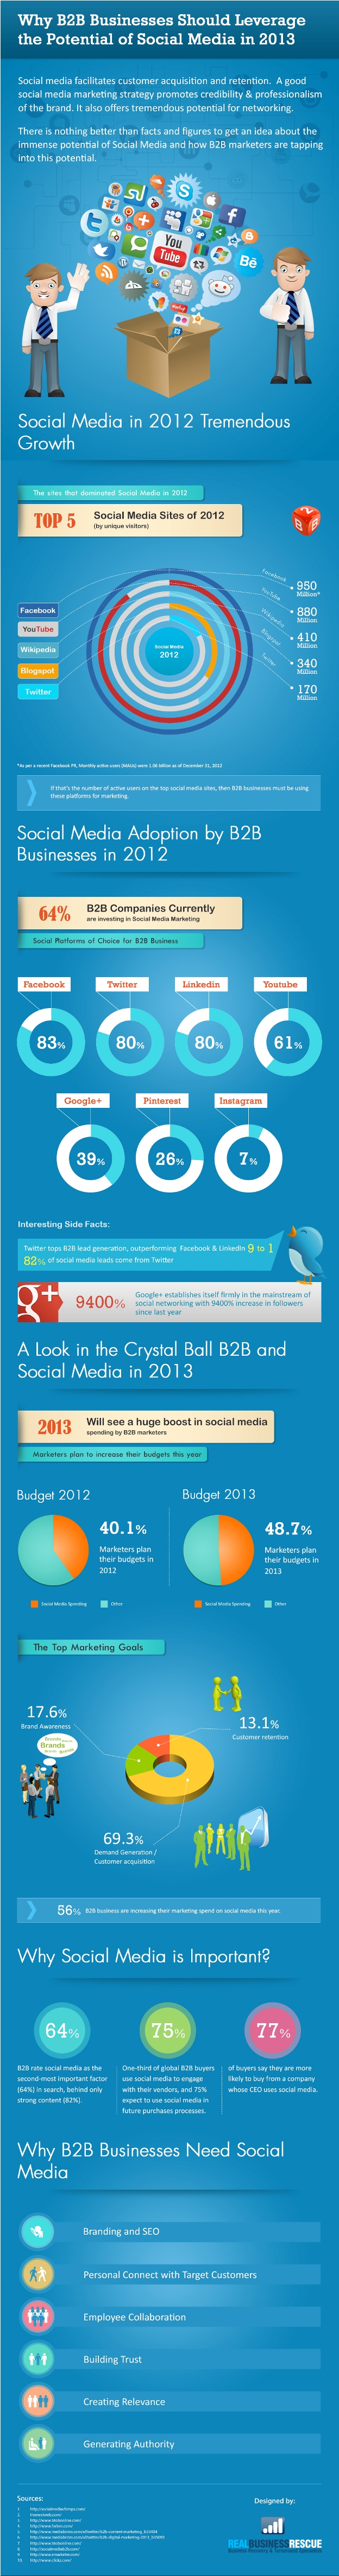 11. Social Media and Digital marketing